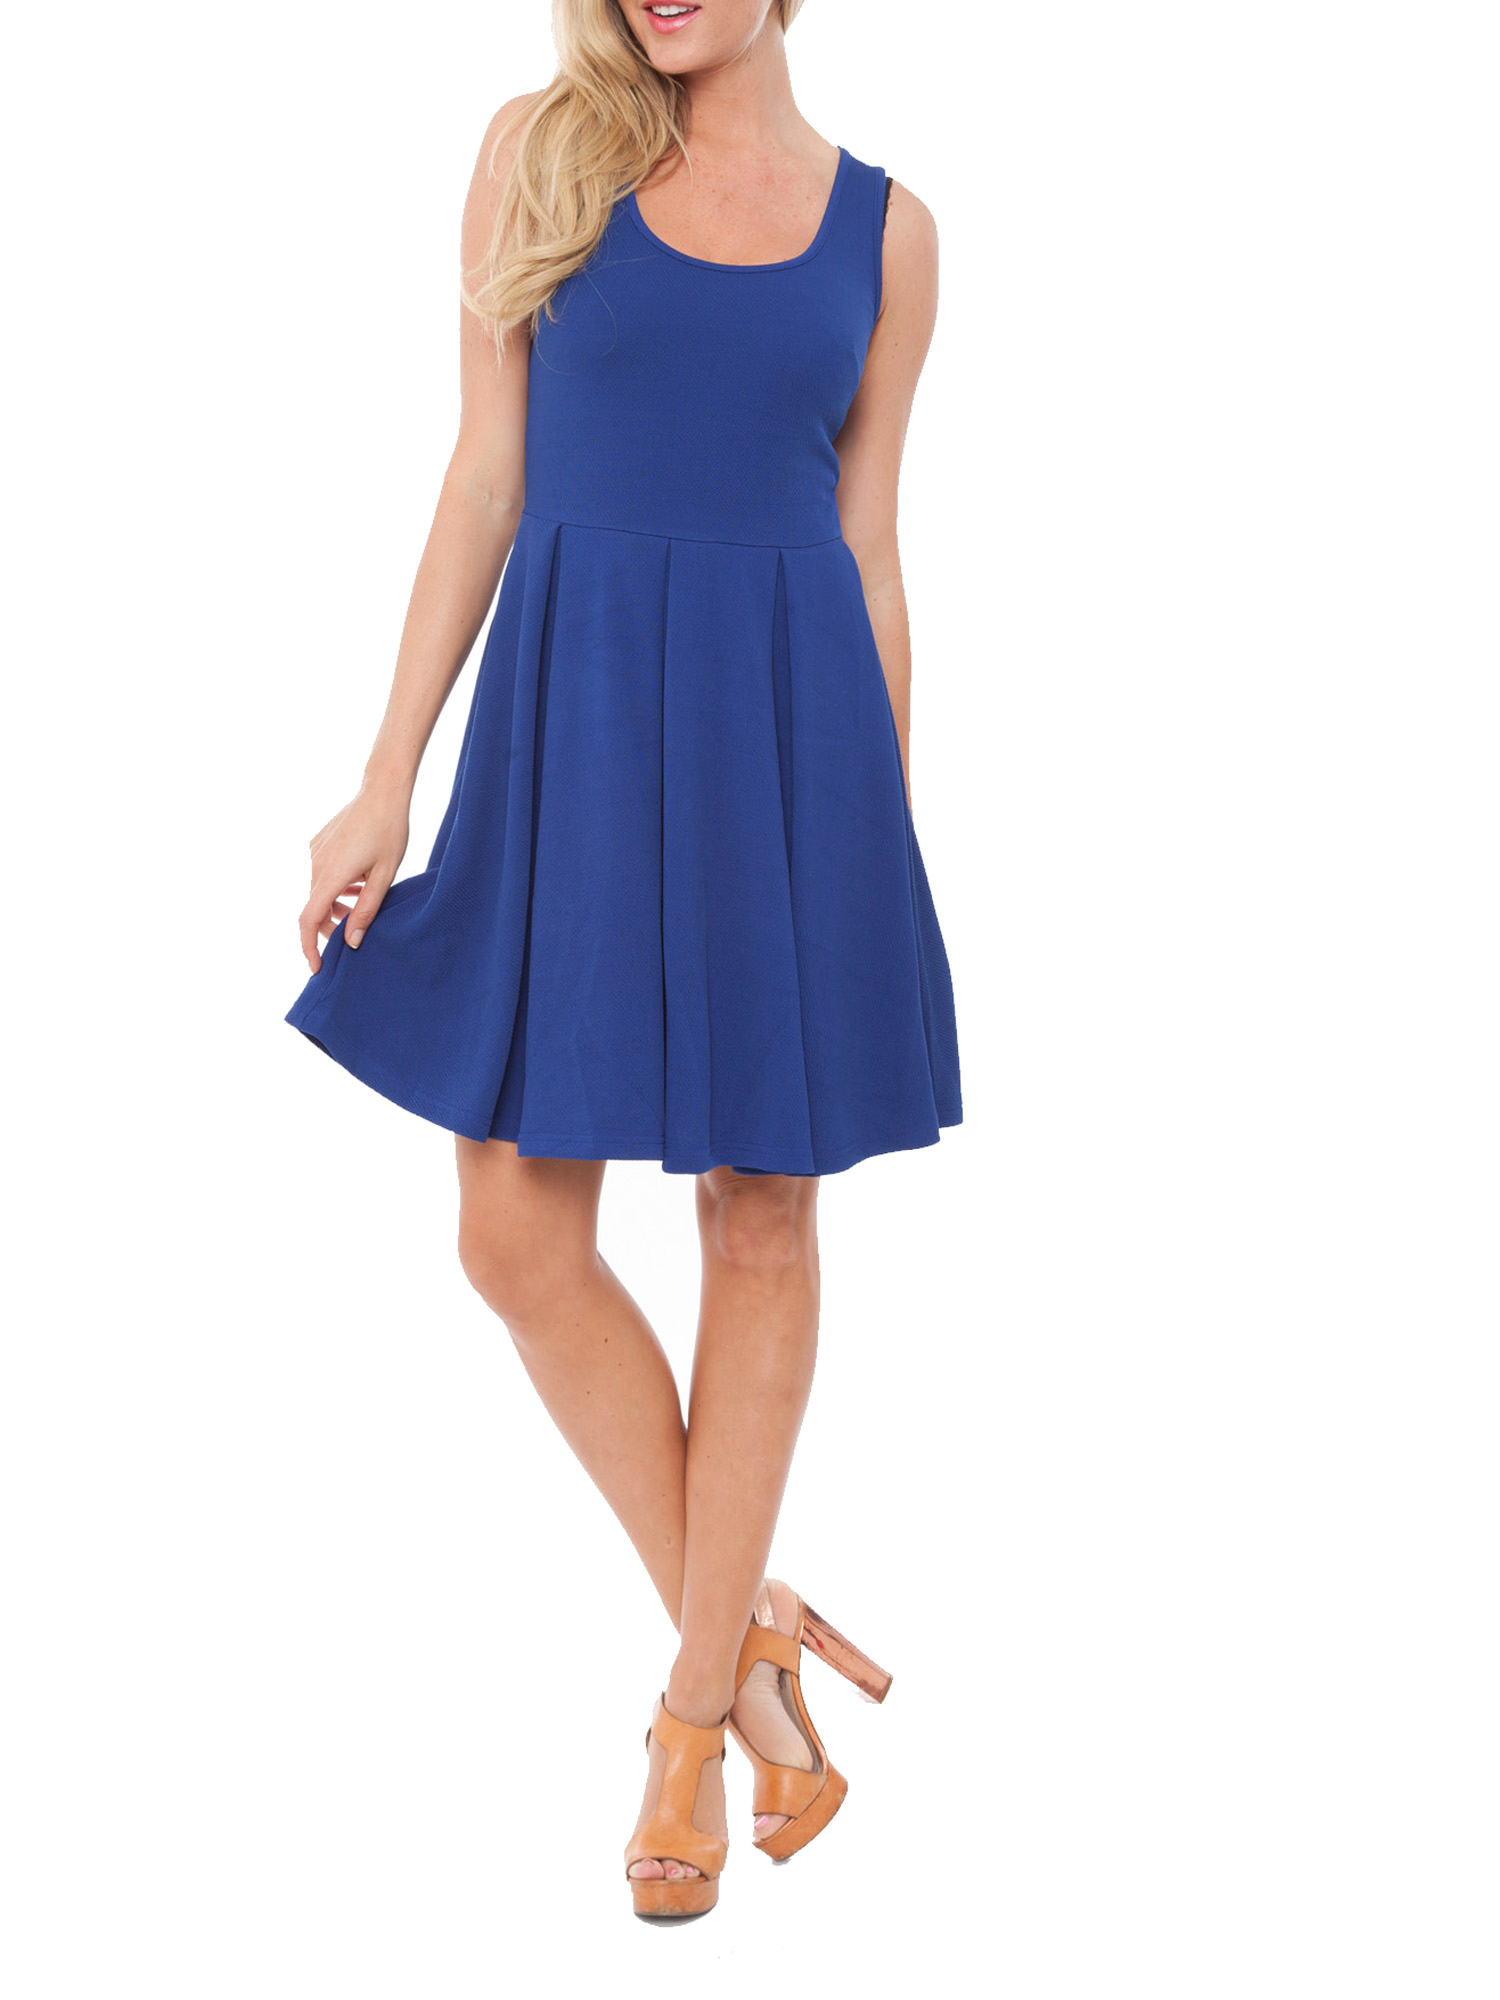 Women's Fit and Flare Mini Dress